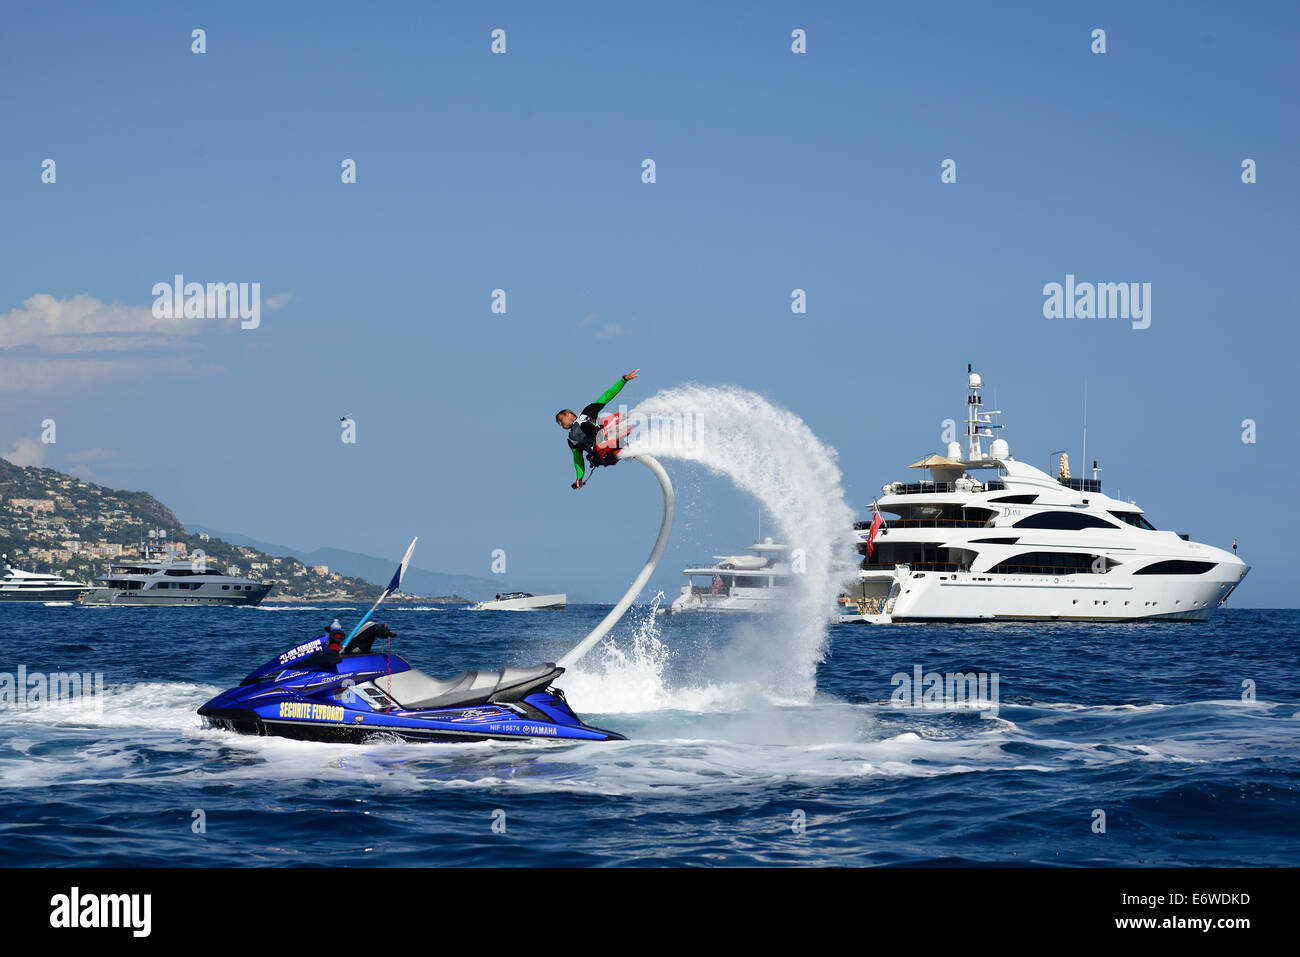 FLYBOARDING. Beaulieu-sur-Mer, Alpes-Maritimes, French Riviera, France. - Stock Image